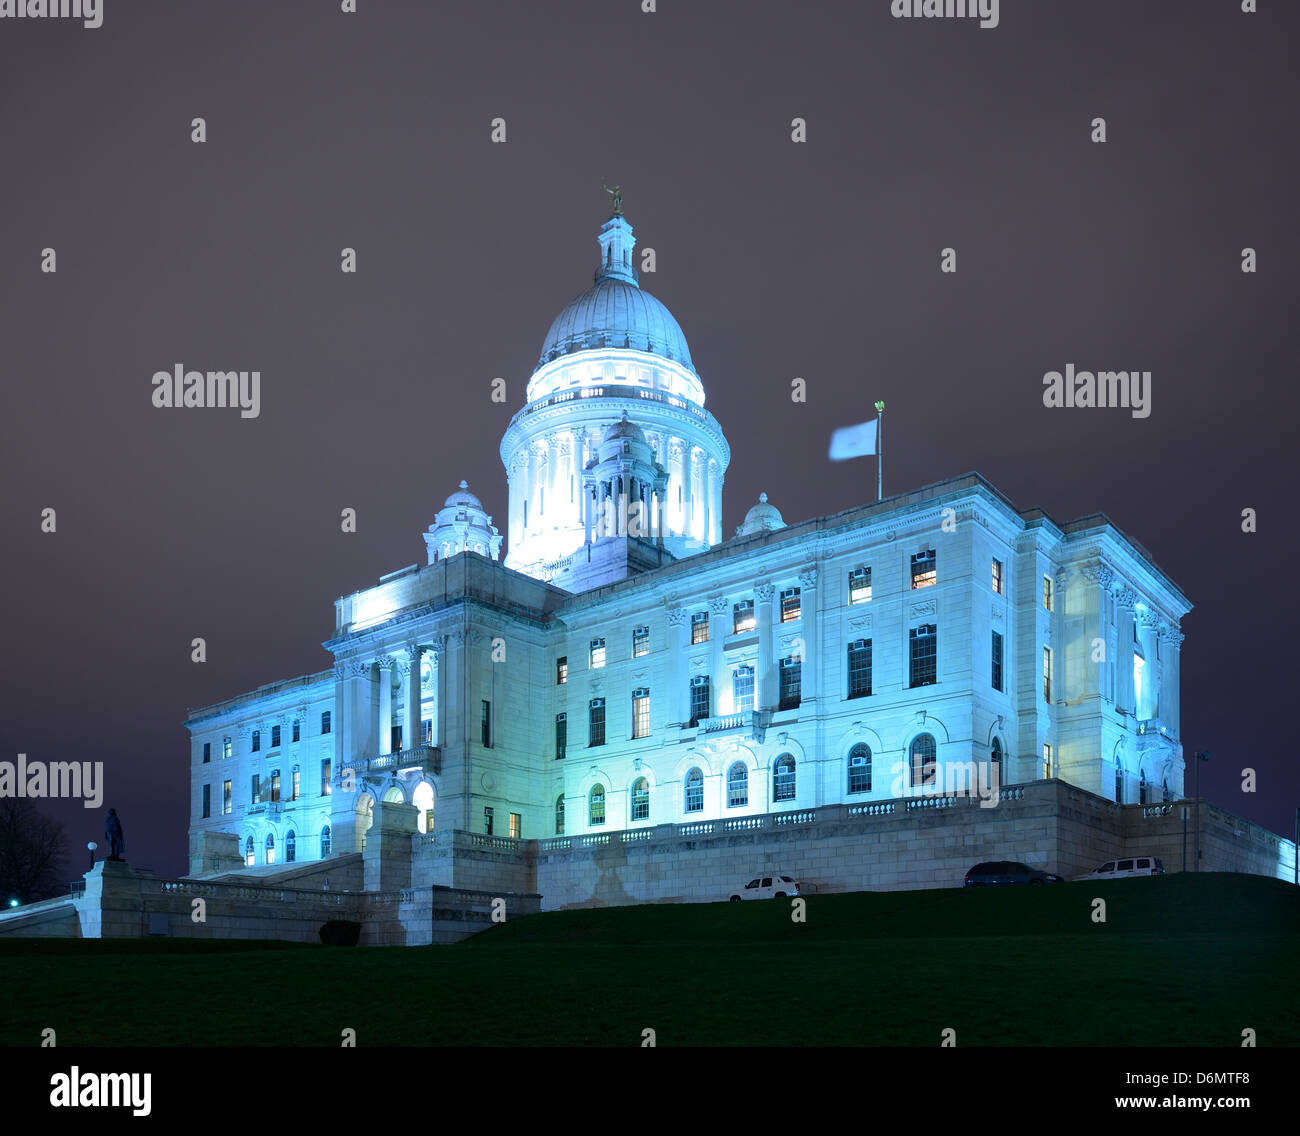 Rhode Island State House in Providence, Rhode Island. - Stock Image